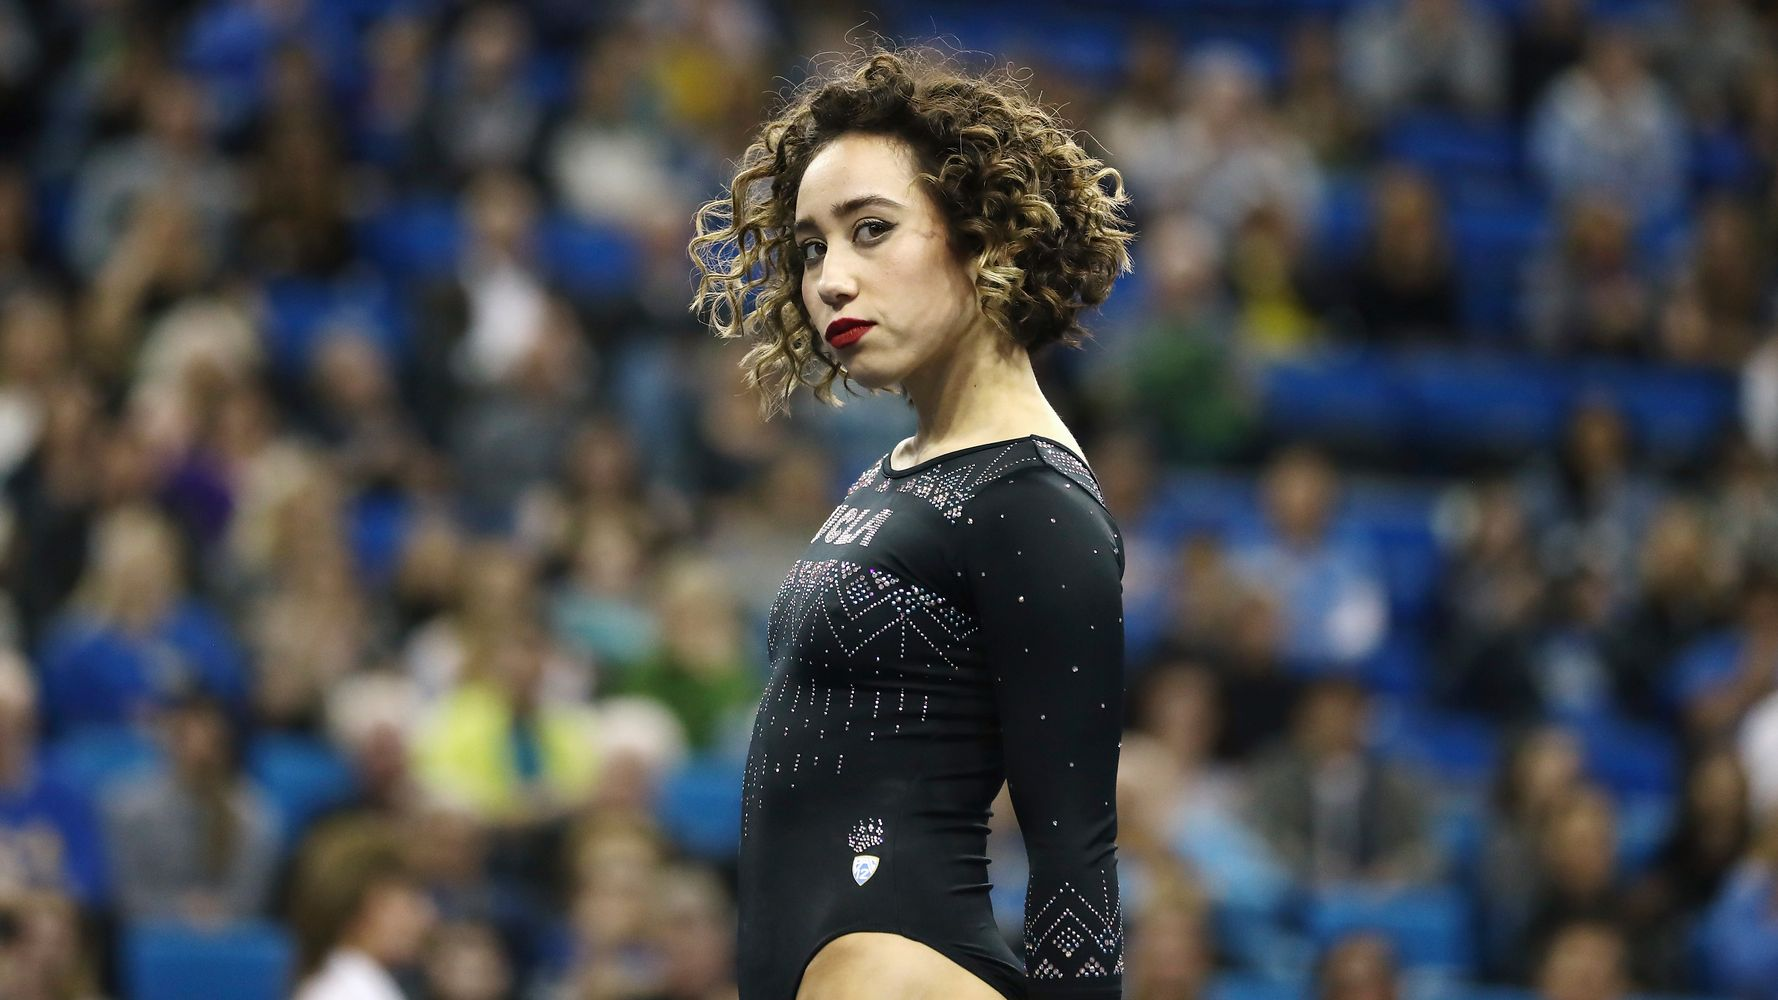 Gymnast Katelyn Ohashi Says She Was Body-Shamed Online After Perfect 10 Routine